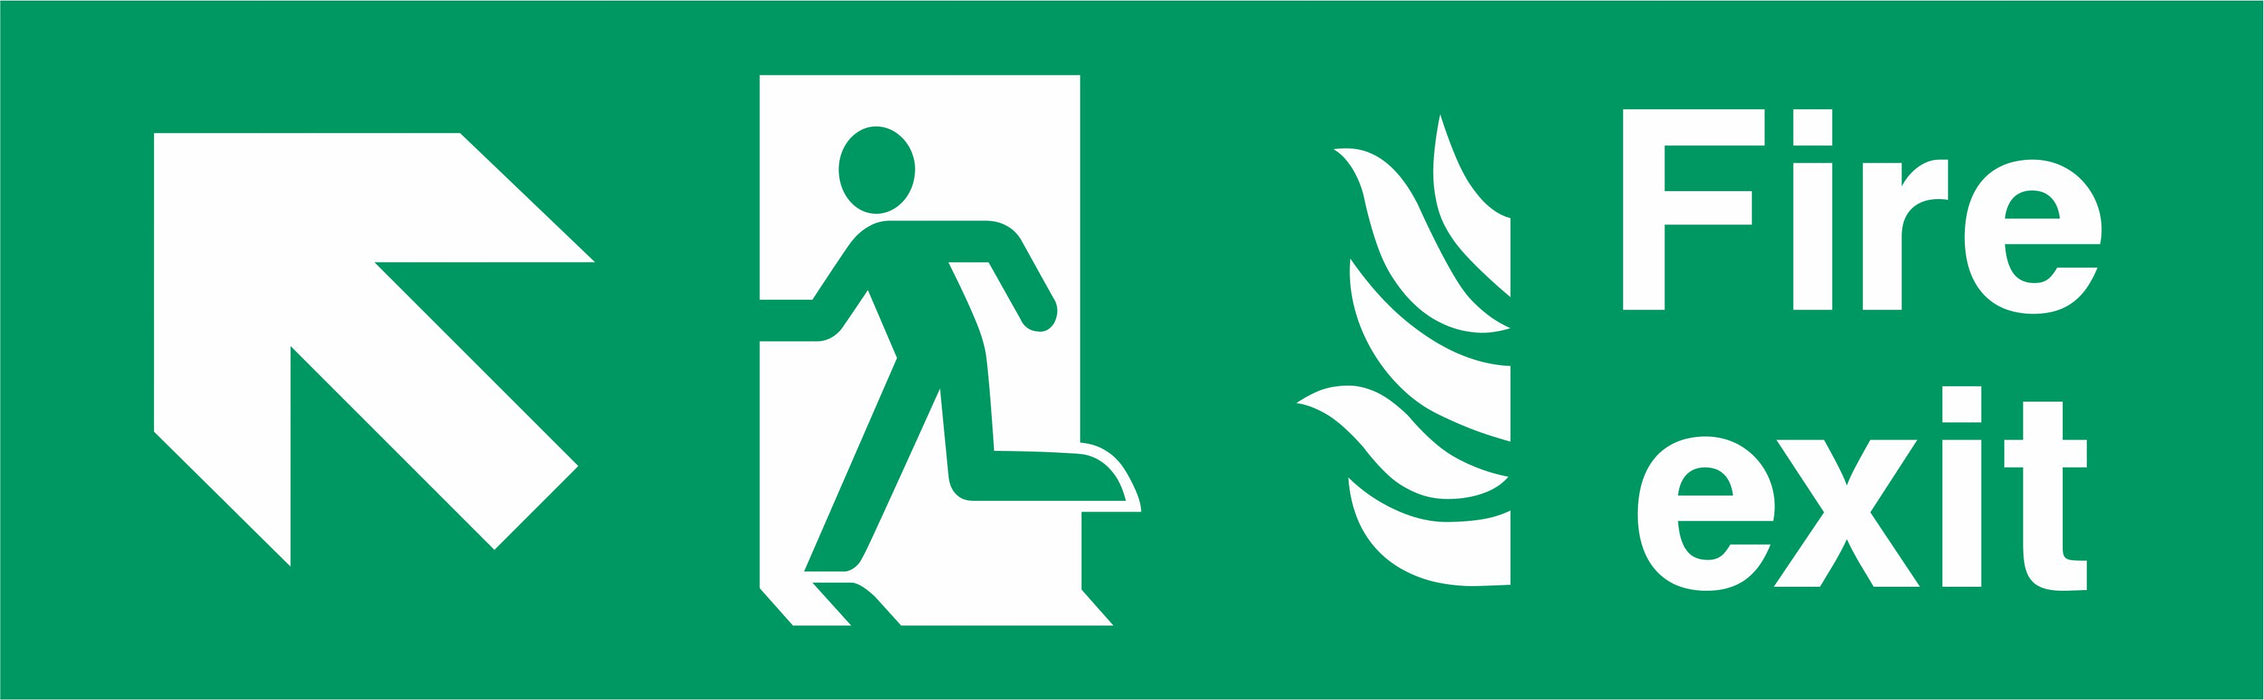 Fire Exit - Running Man Left - Up Left Arrow - NHS COMPLIANT